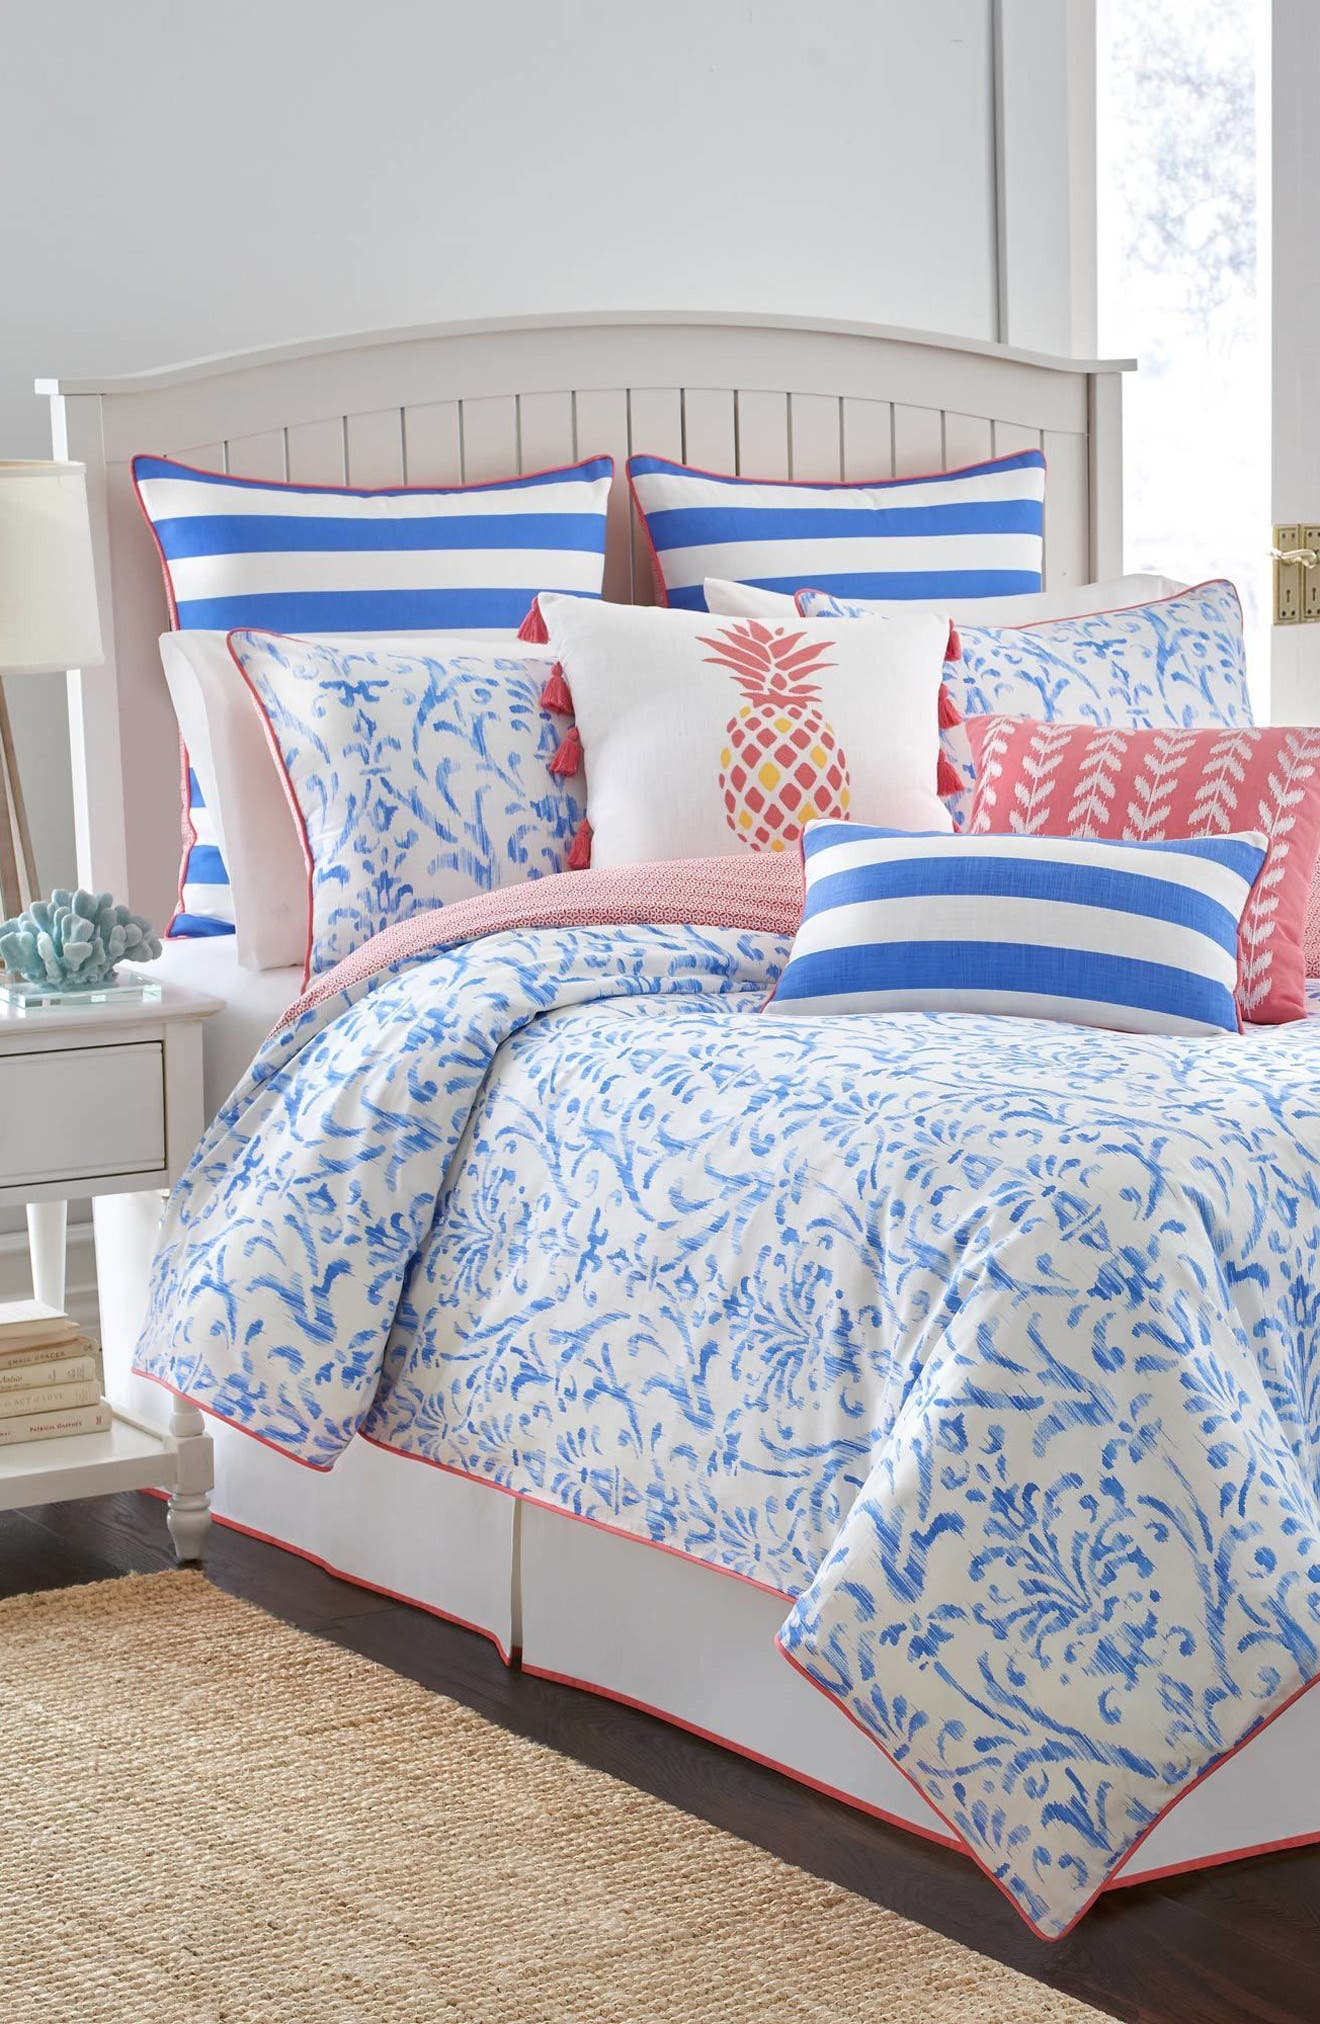 Coastal Ikat Comforter, Sham & Bed Skirt Set,                         Main,                         color, Cool Water Blue